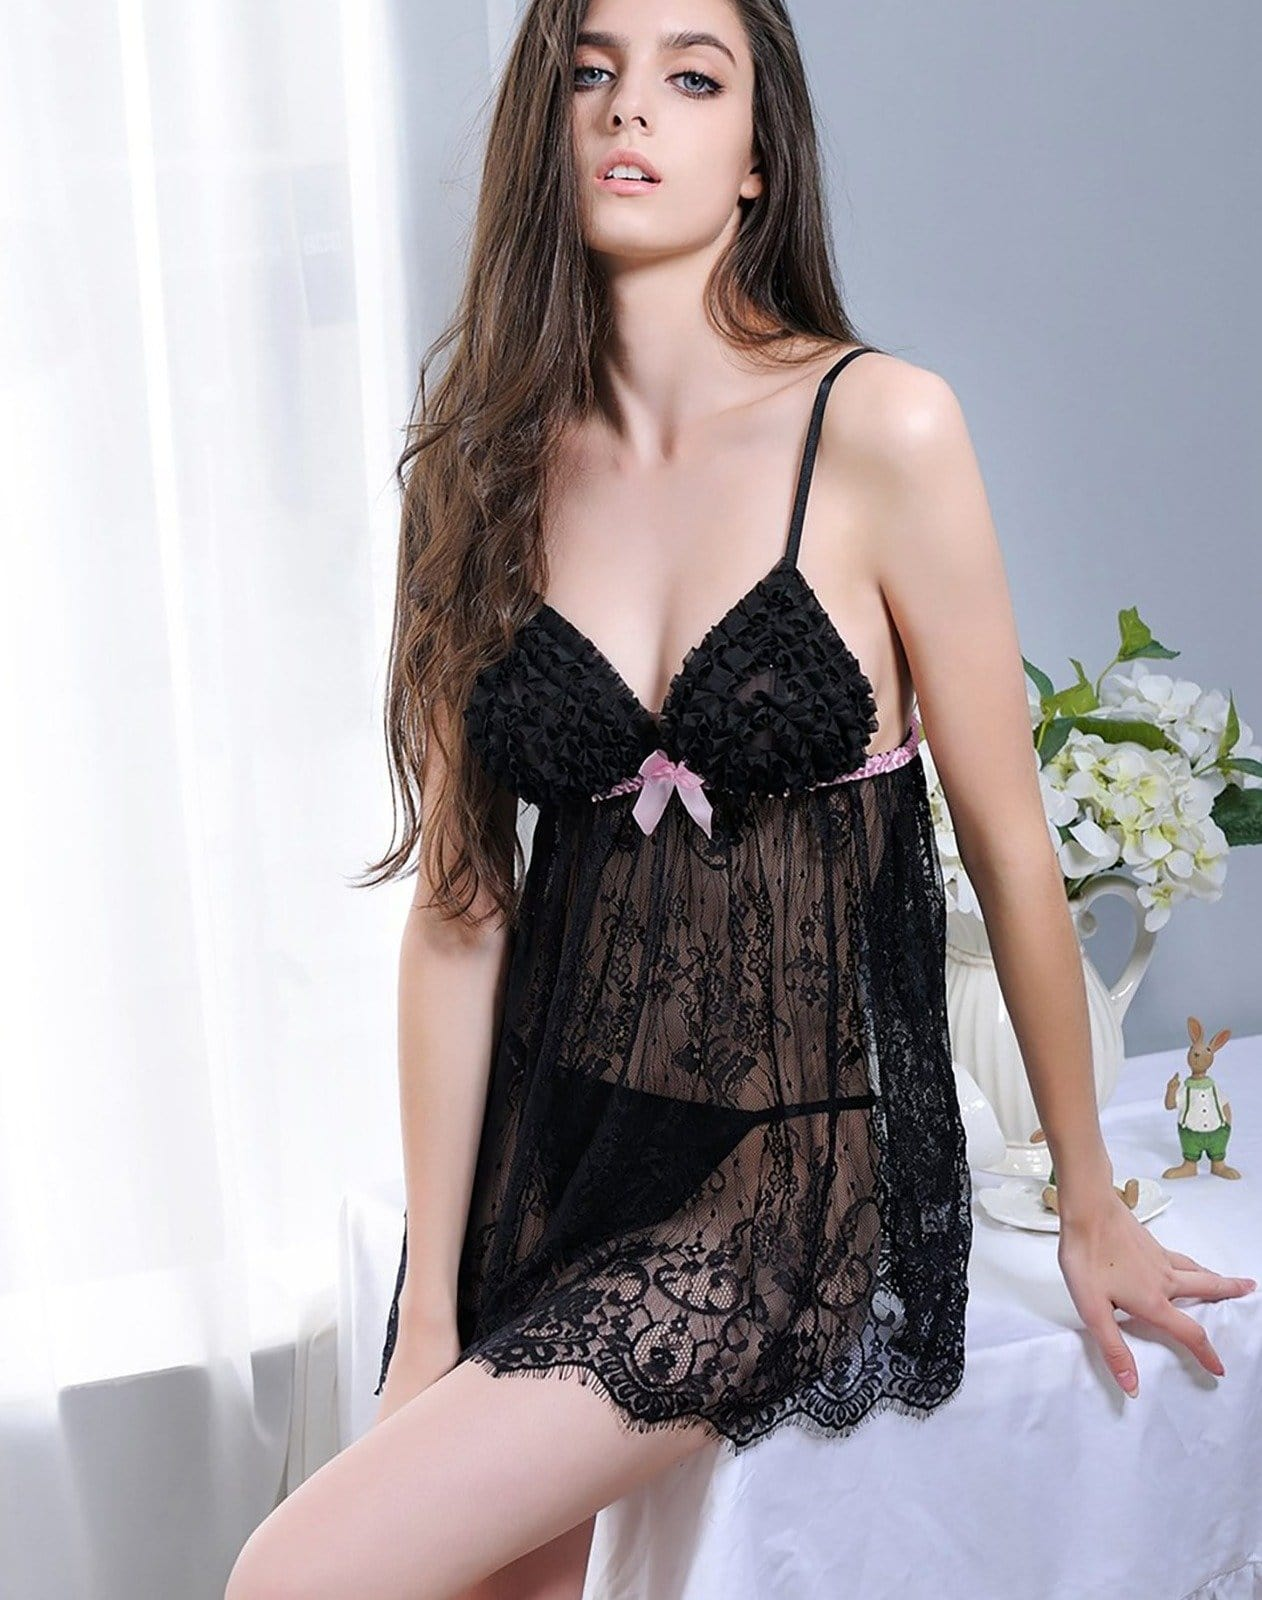 Babydoll Lace Lingerie - Black Red & Pink